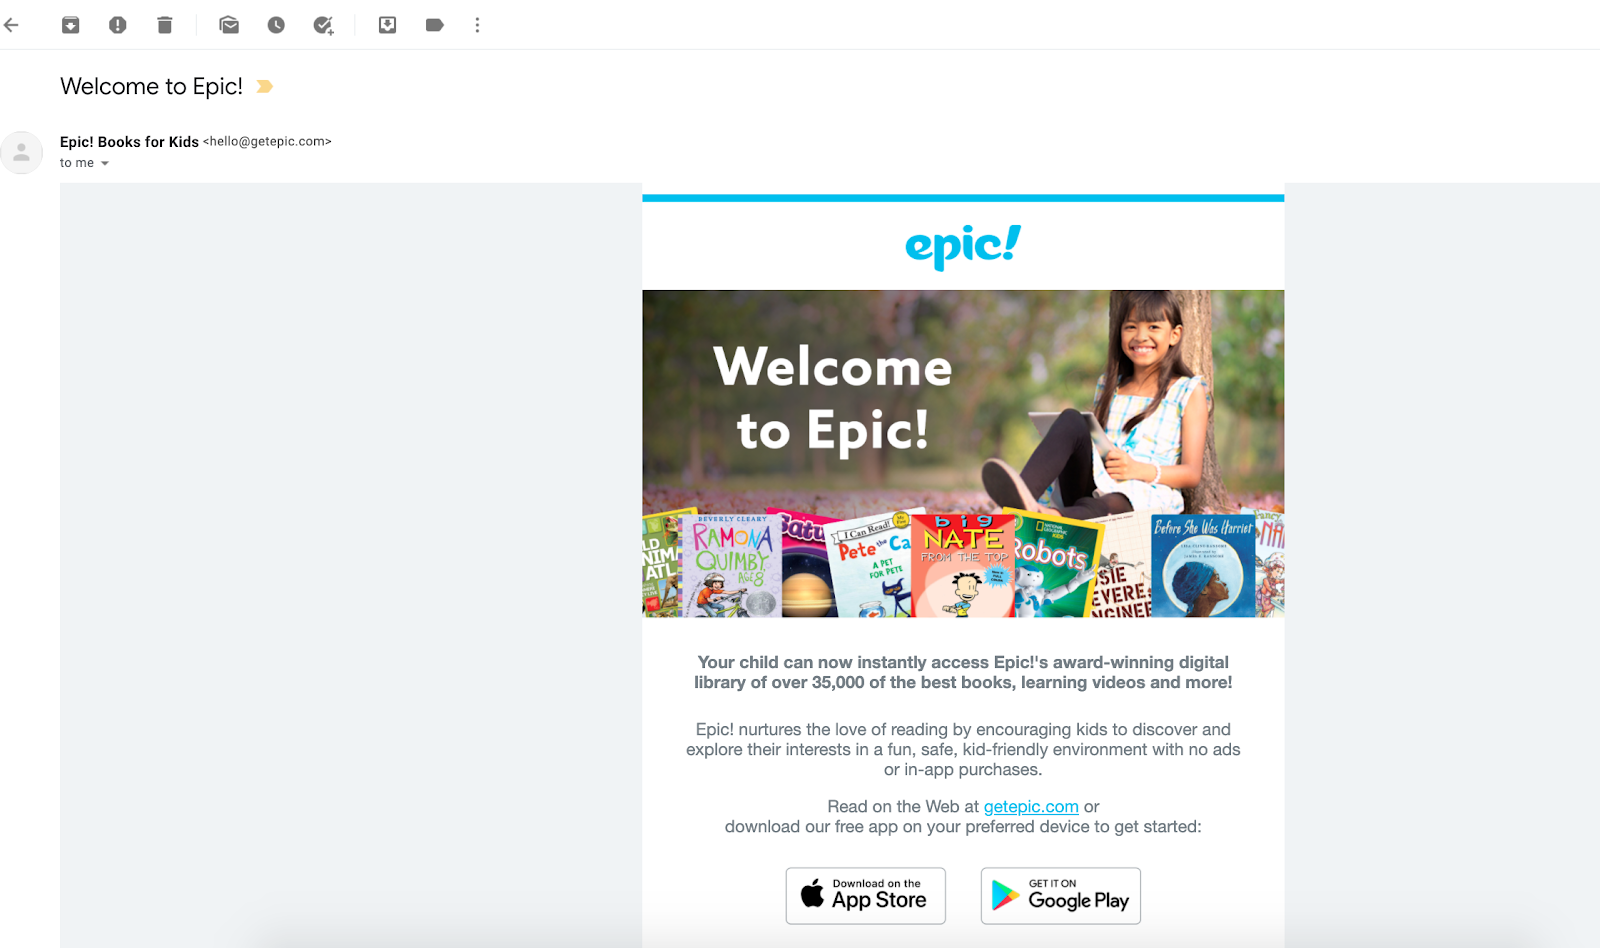 Example of marketing email created to welcome new users